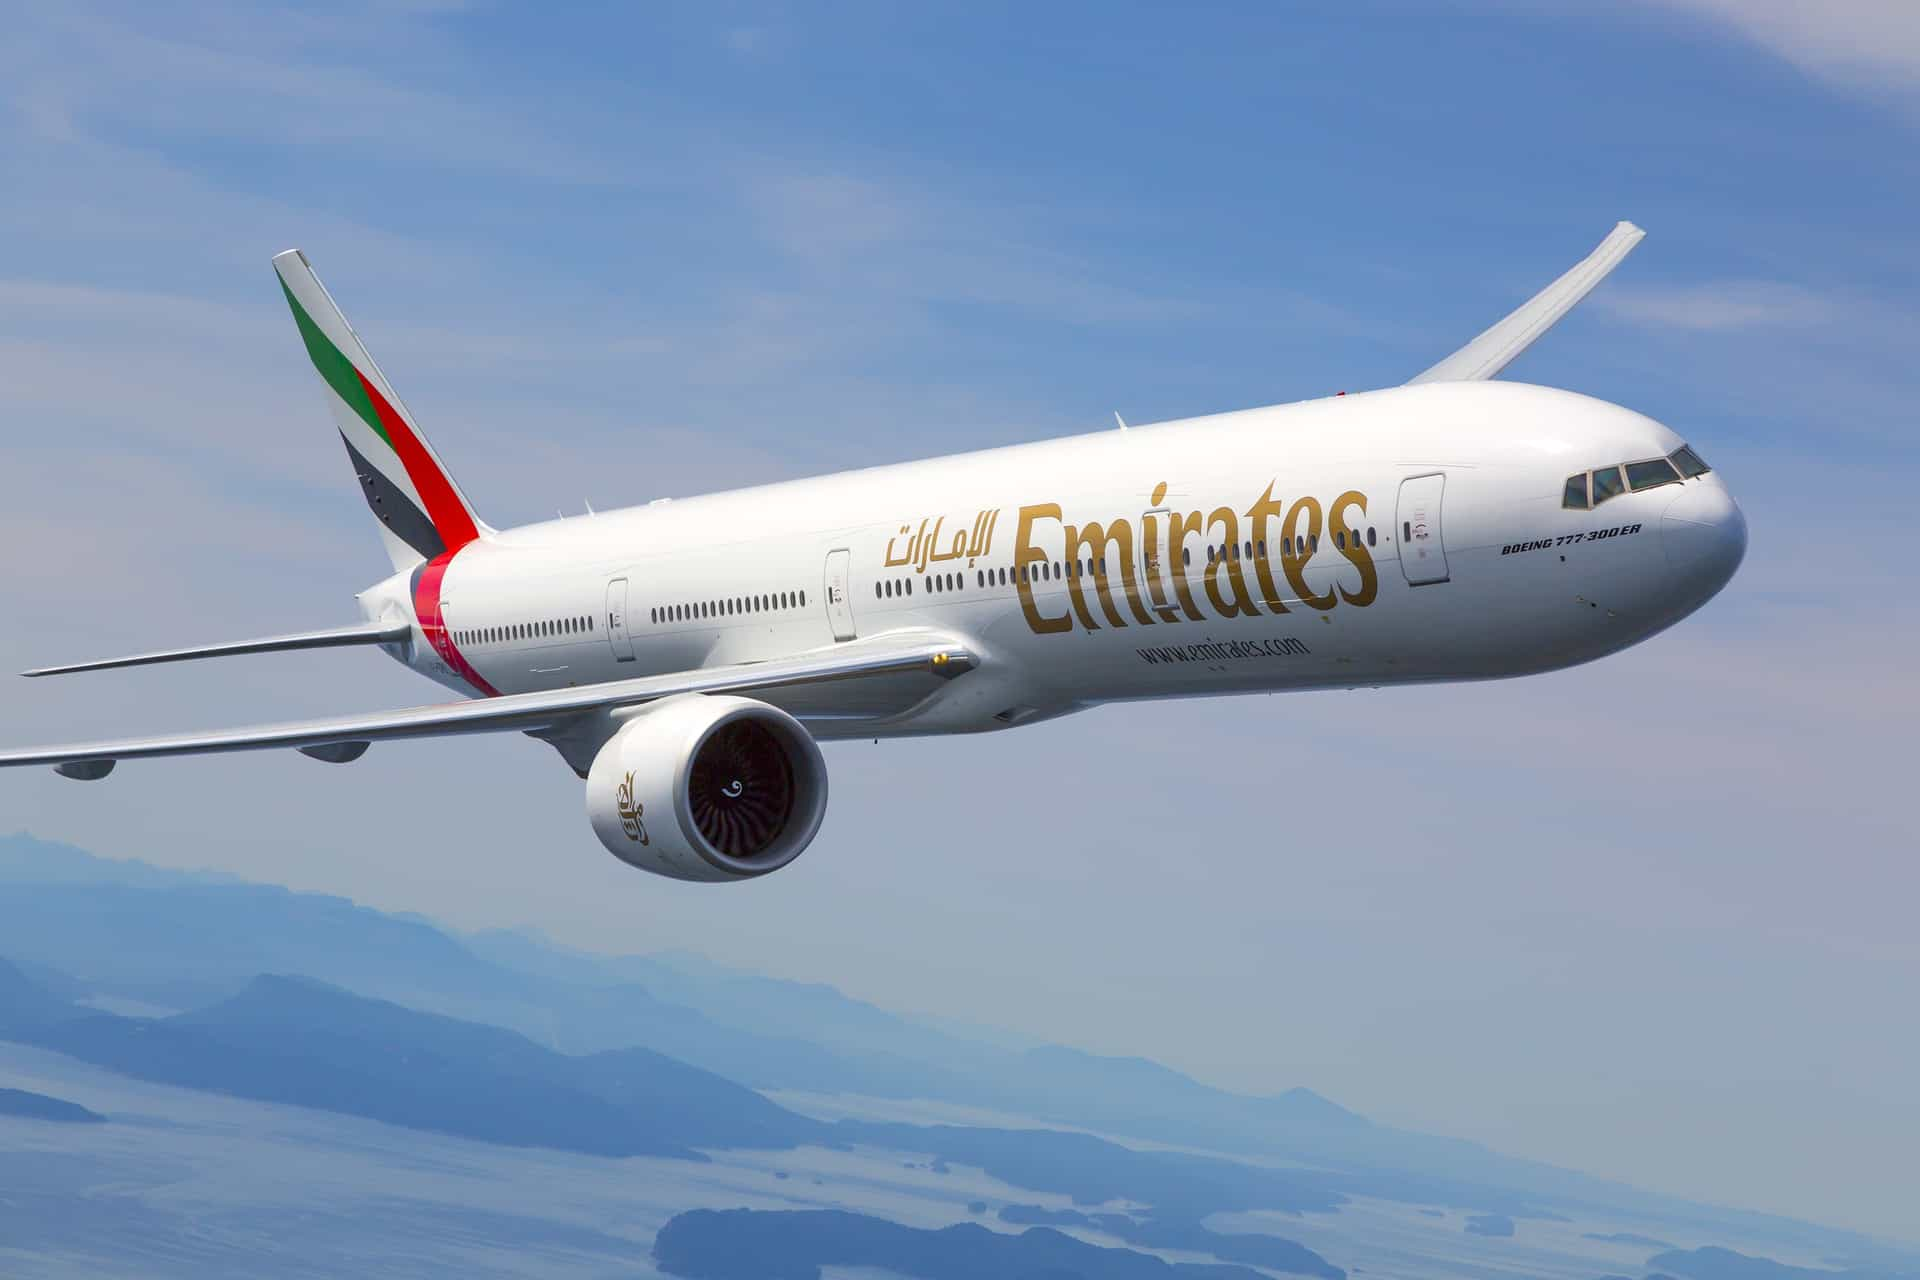 Most Expensive Airlines - Emirates